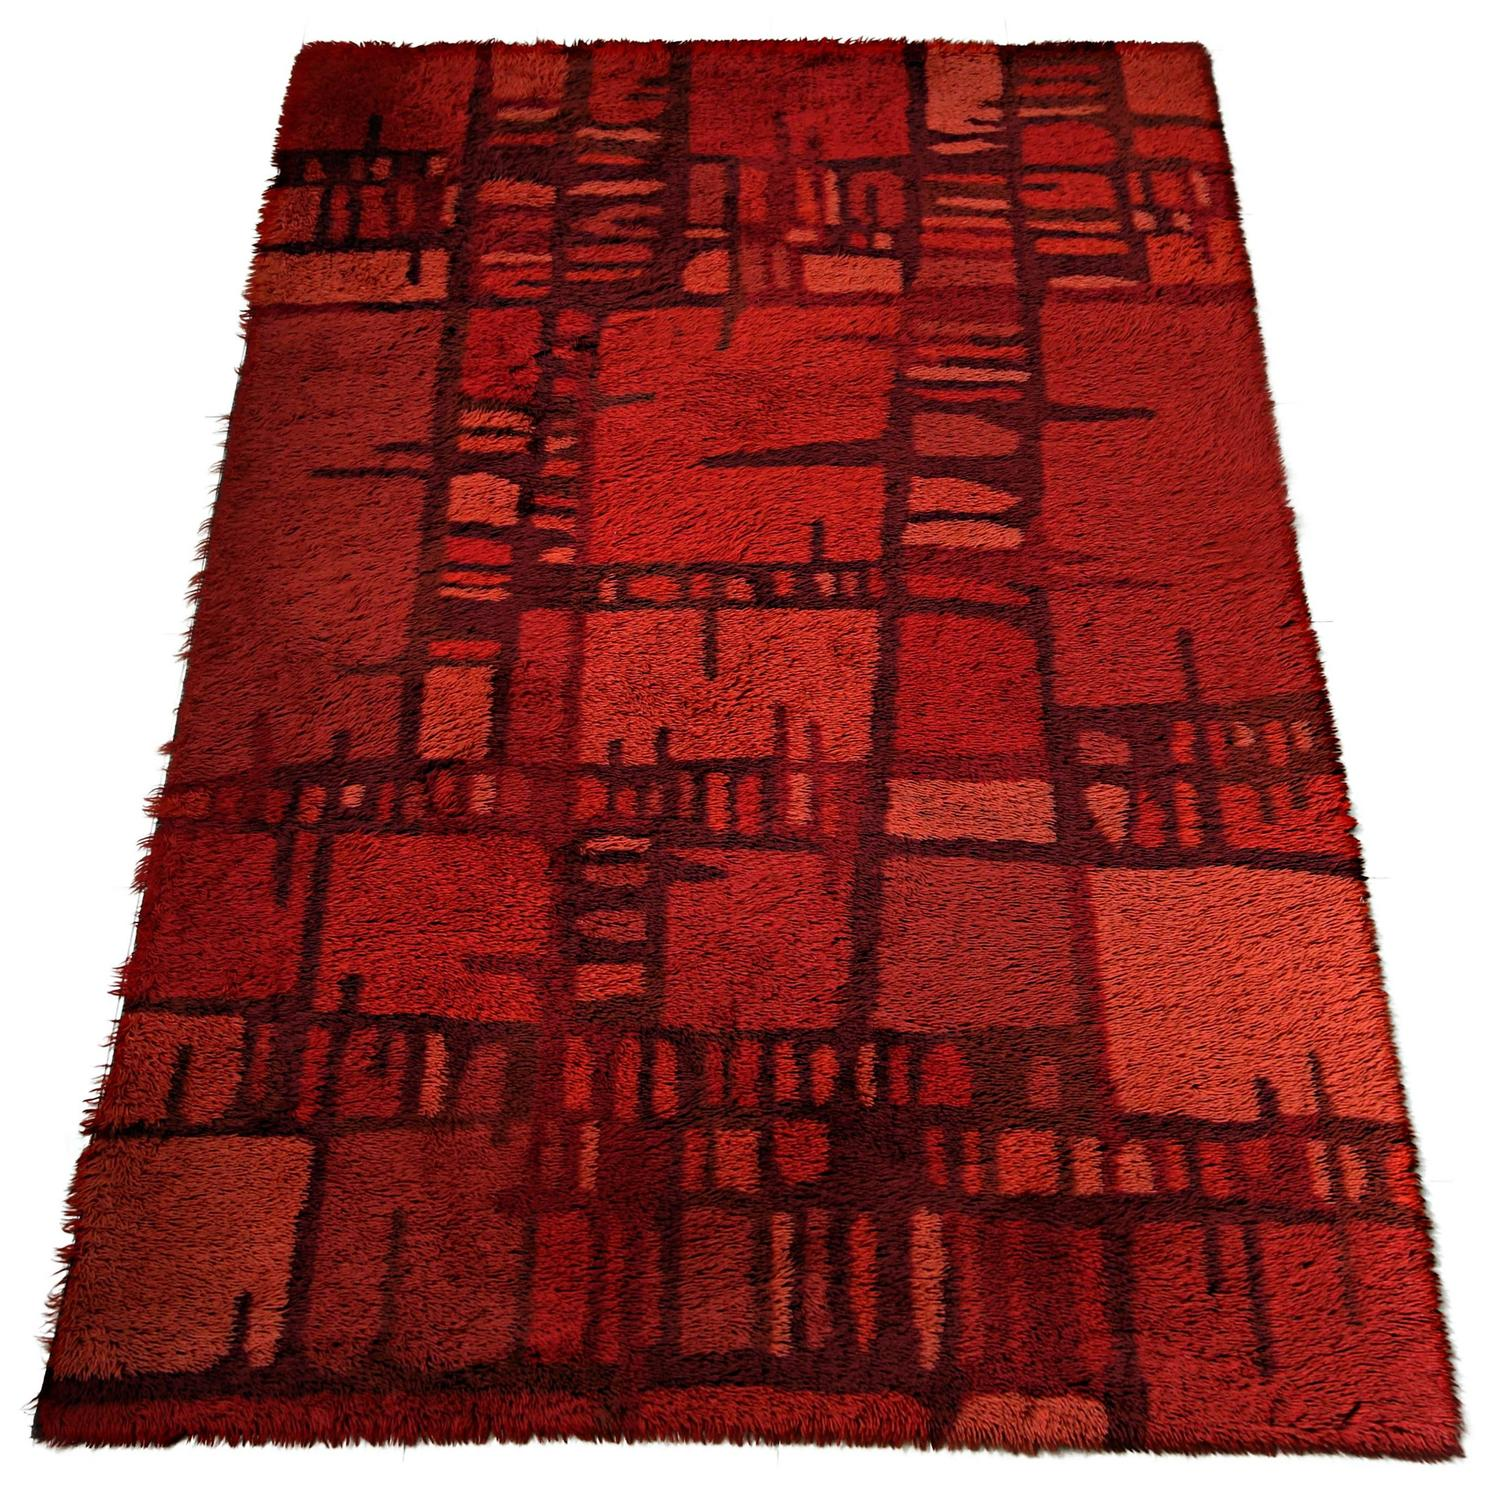 Mid 20th Century Modern Scandinavian Area Rug At 1stdibs: Huge Swedish Mid Century Red Rya Rug For Sale At 1stdibs